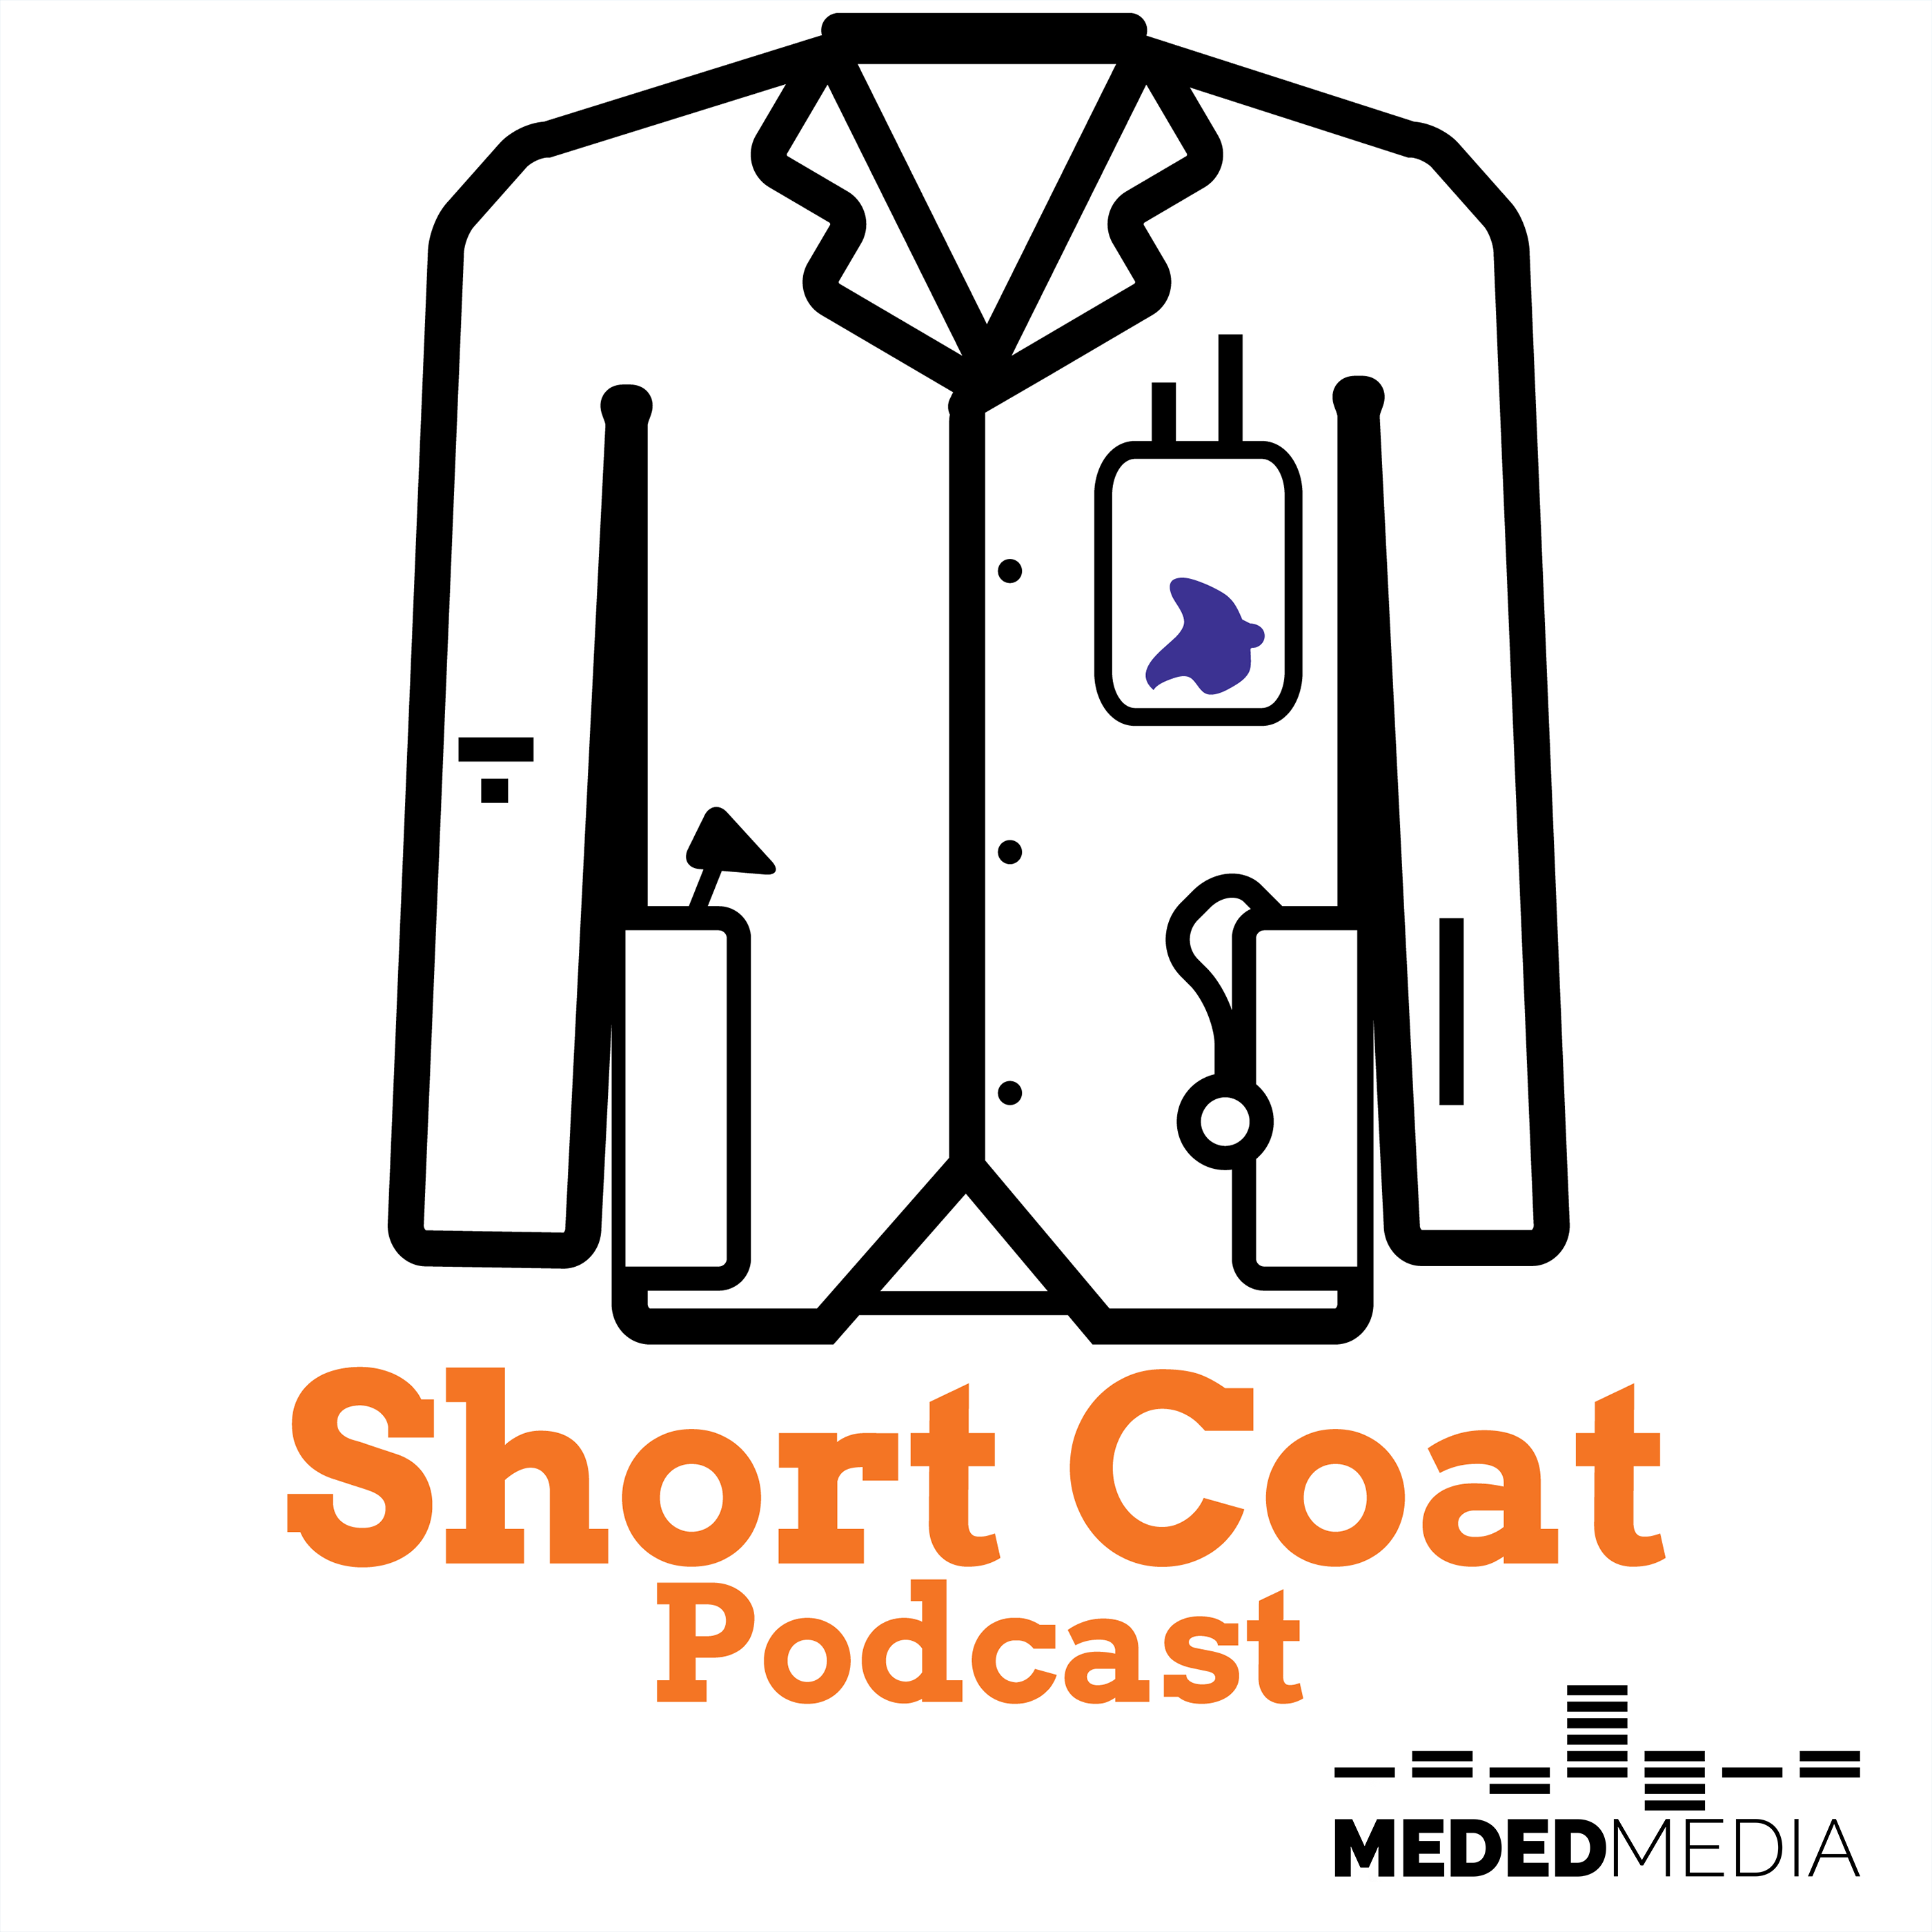 The Short Coat Podcast